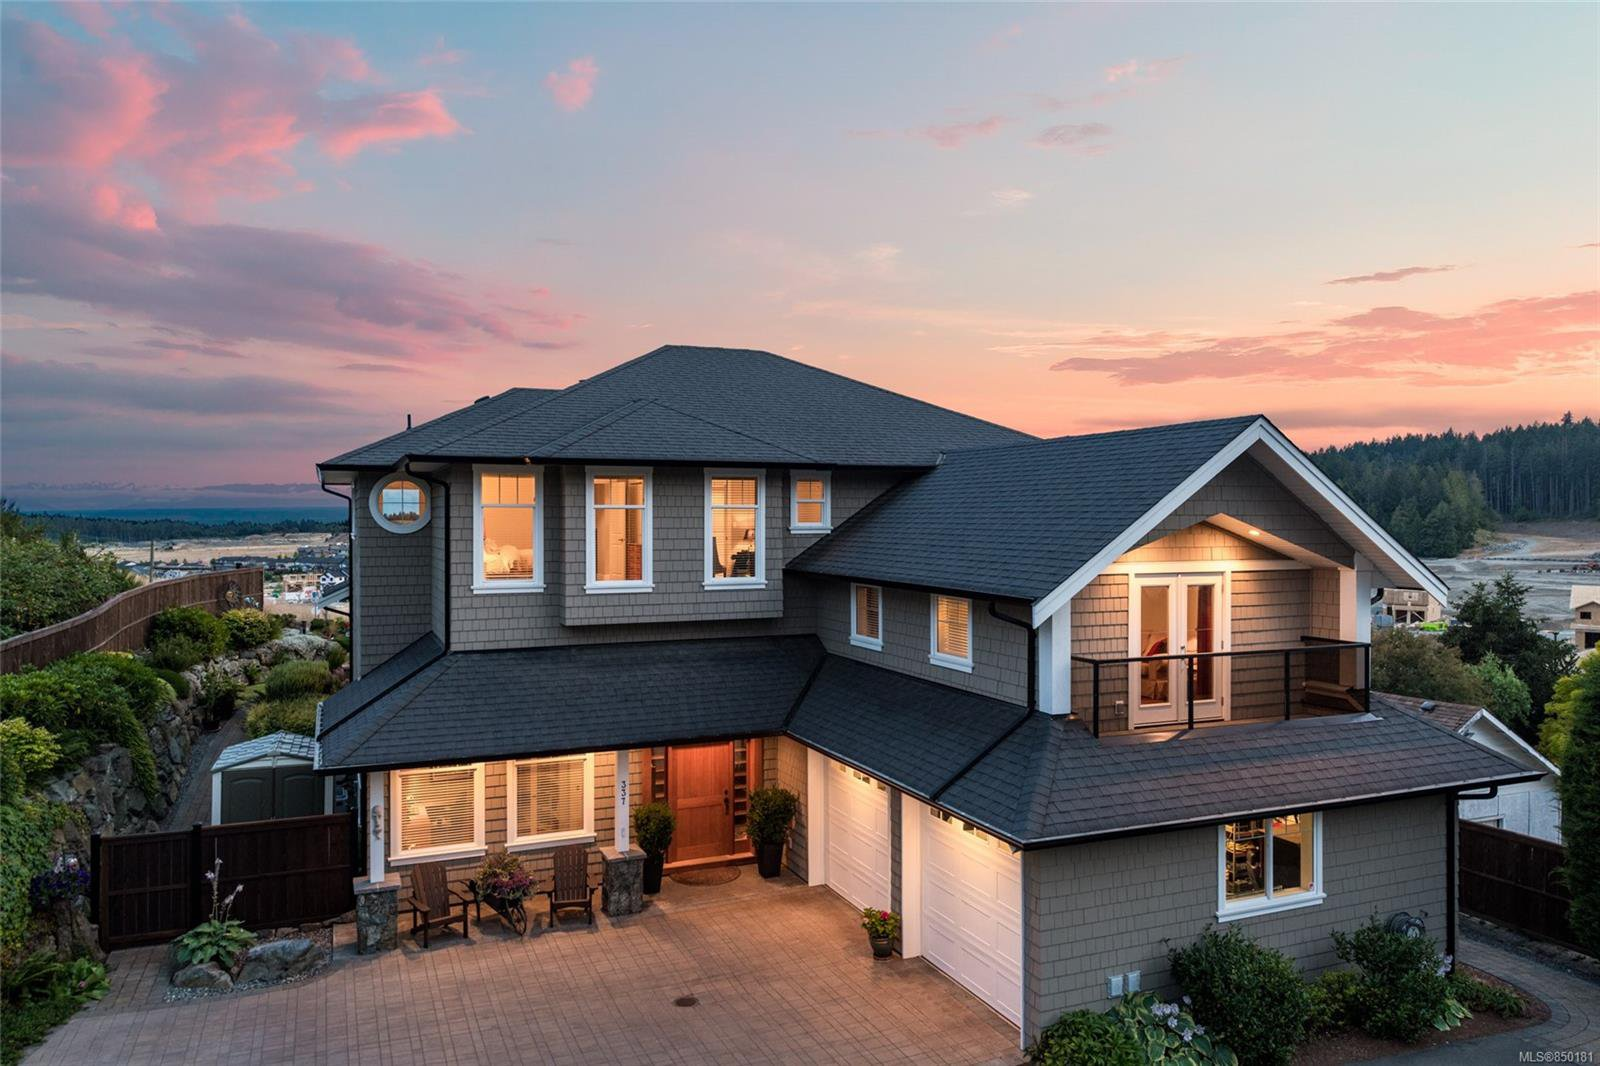 Main Photo: 337 Cotlow Rd in : Co Royal Bay Single Family Detached for sale (Colwood)  : MLS®# 850181